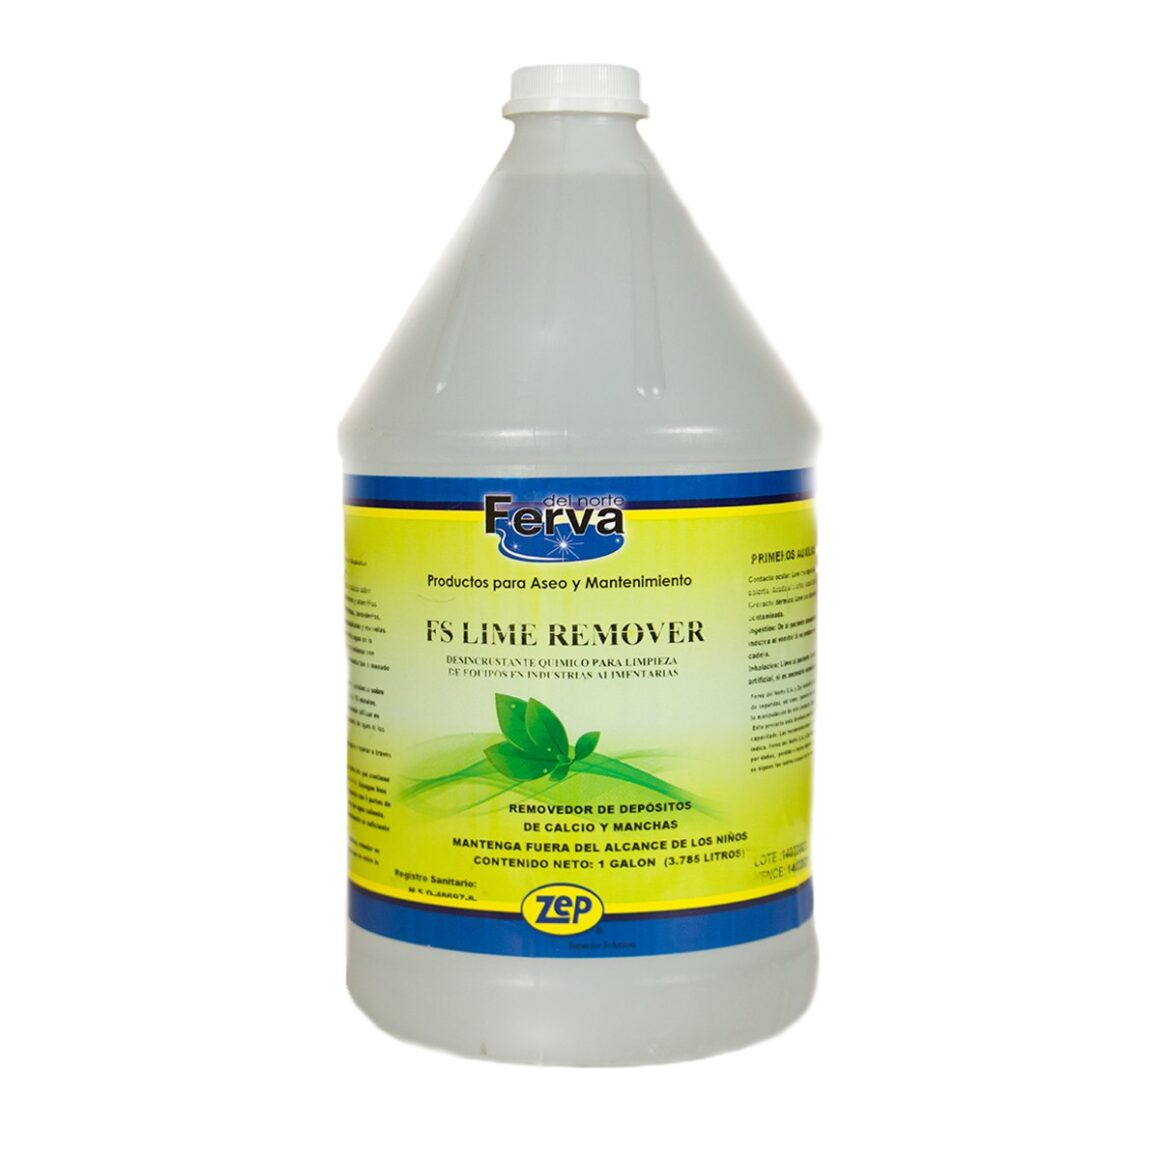 FS Lime Remover